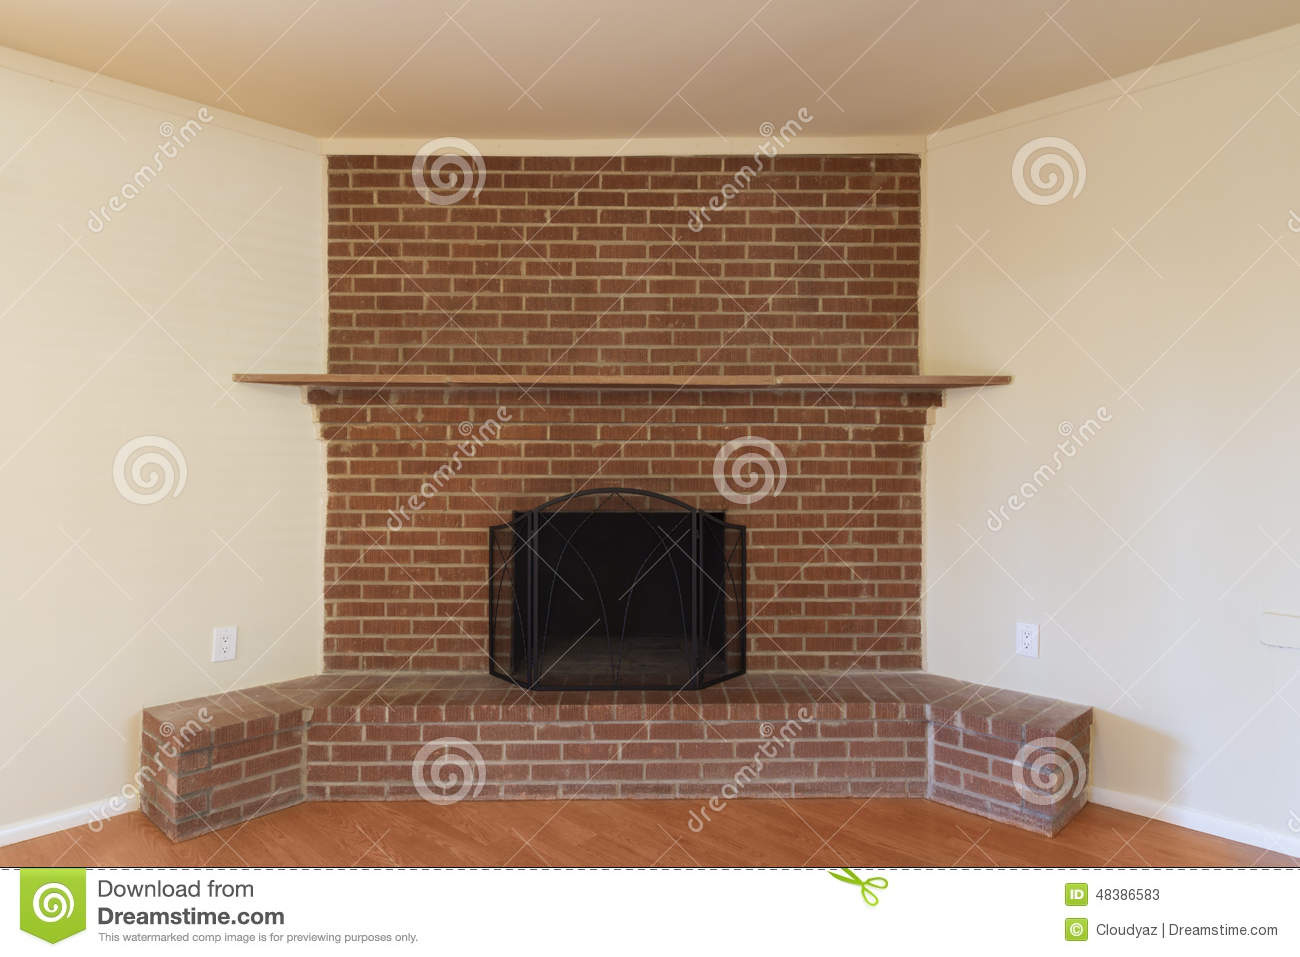 Red brick fireplace stock image image of interior real - Chimeneas de ladrillo ...